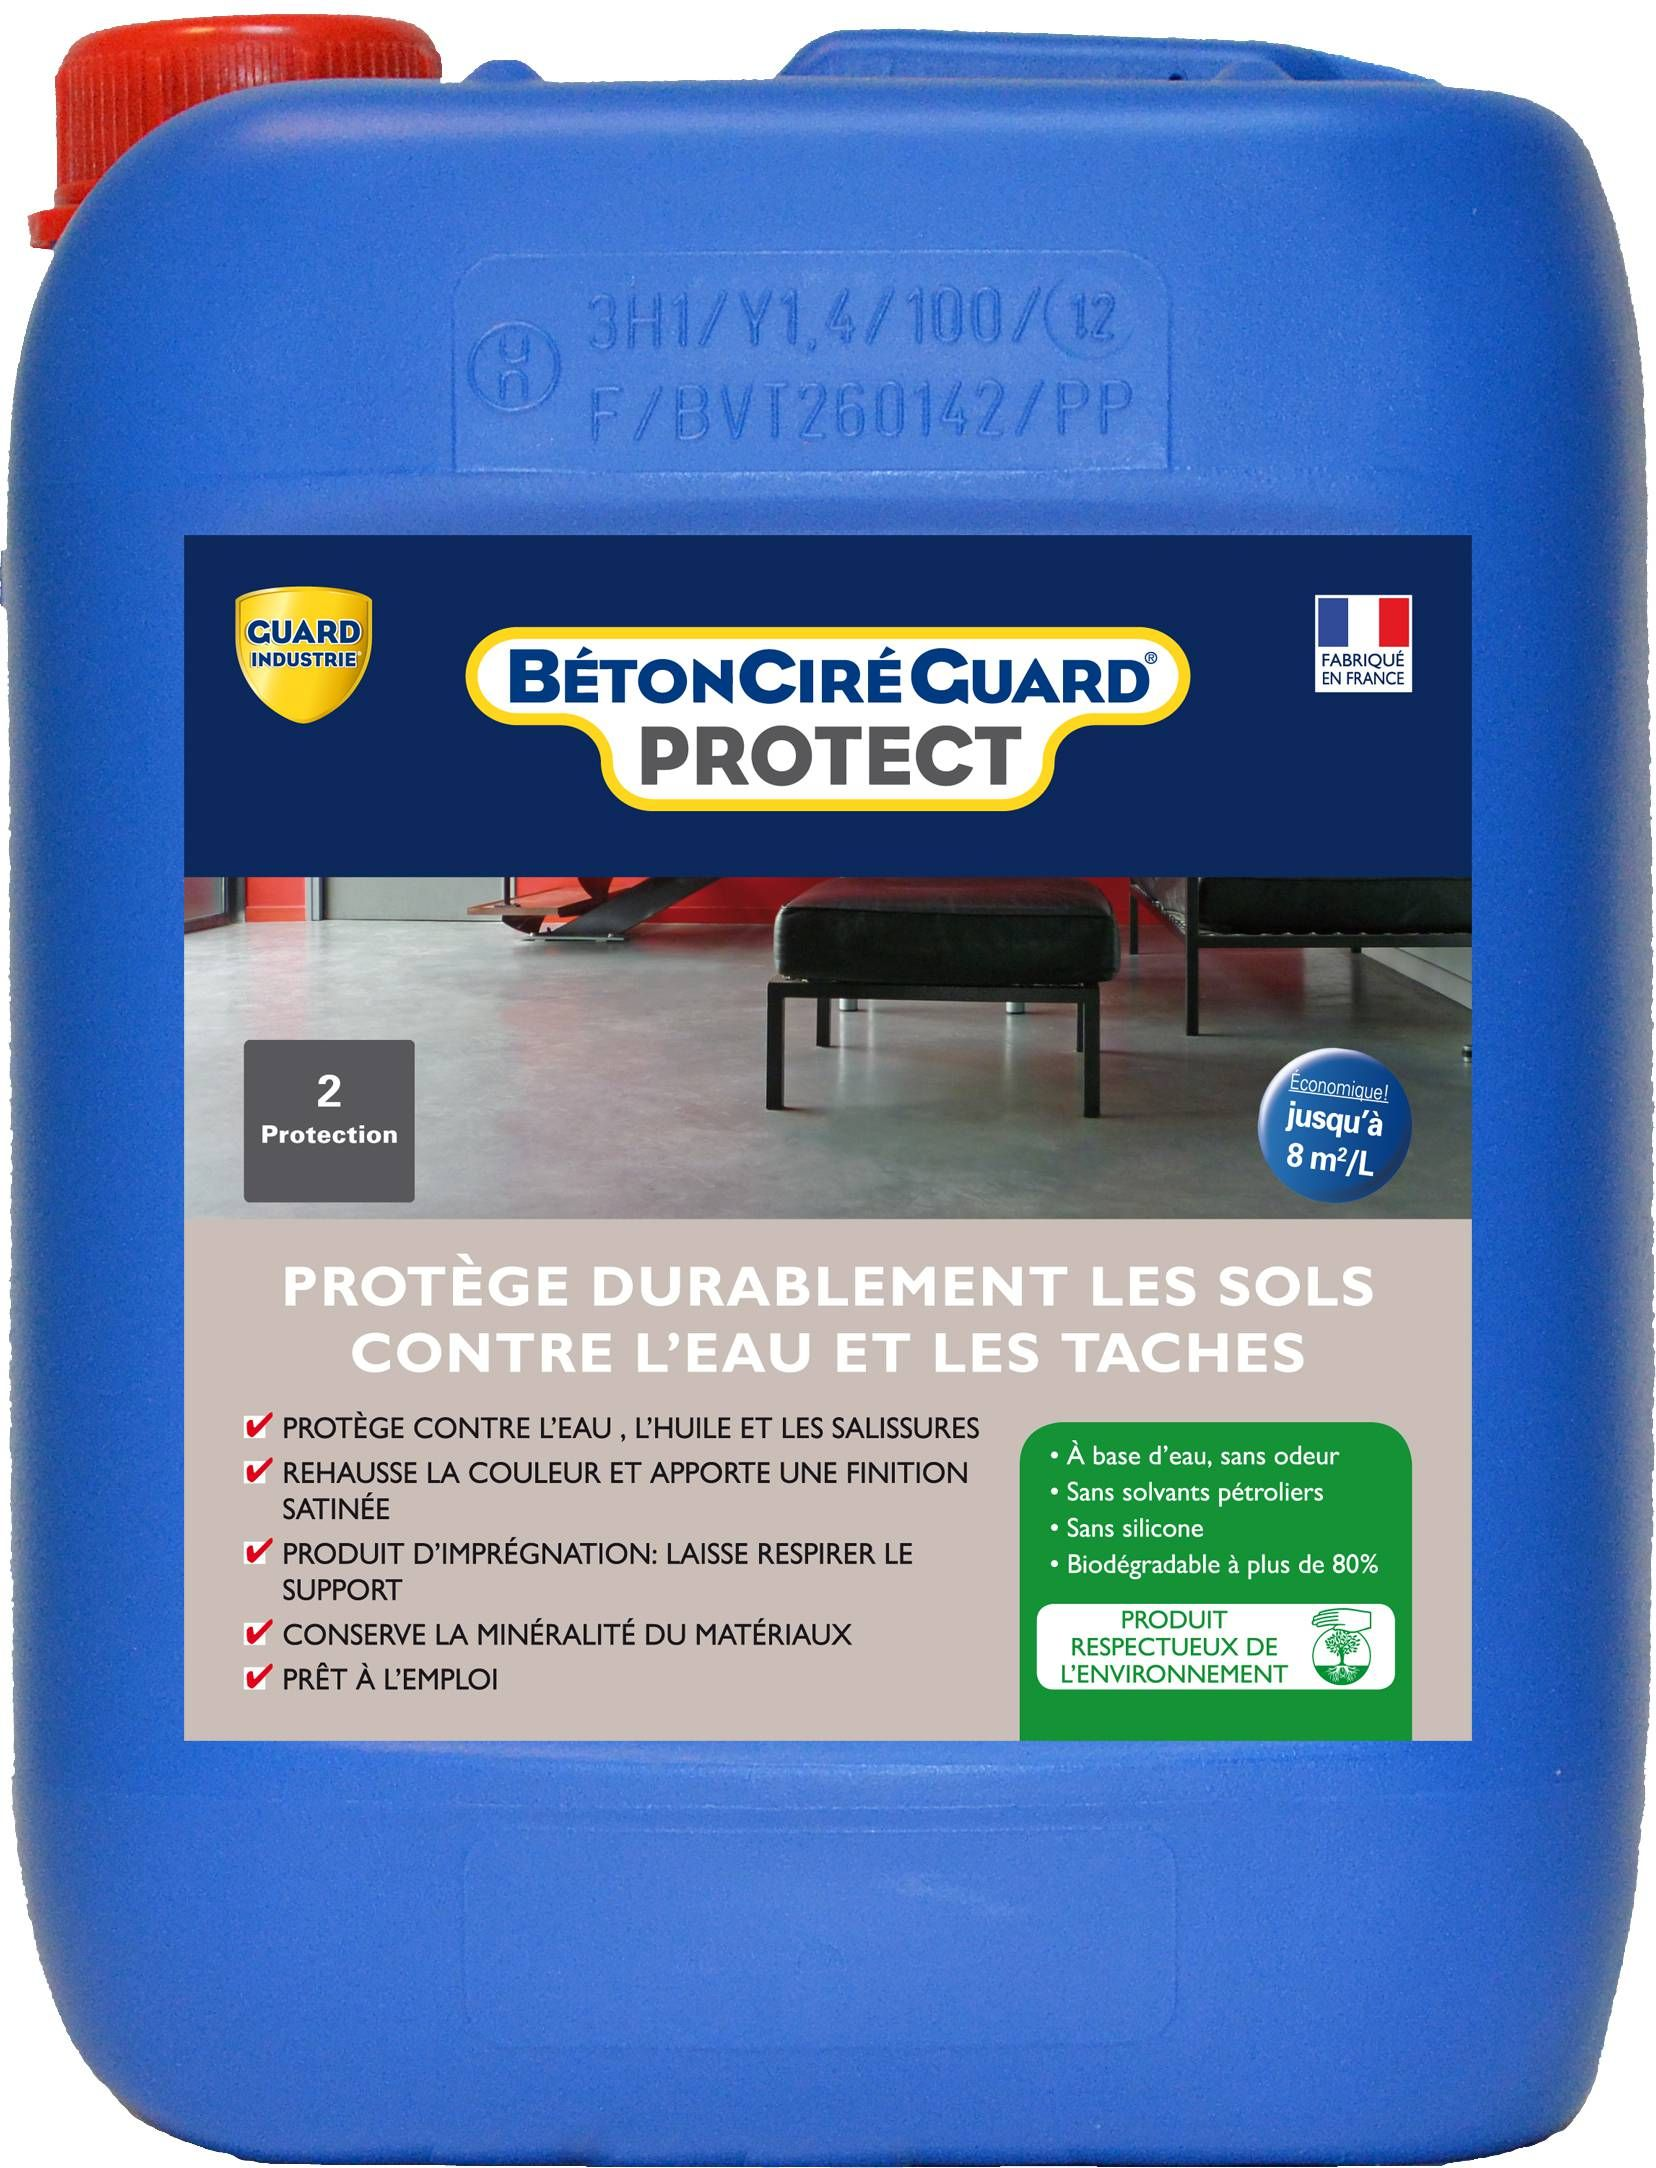 Beton Cire Guard Protect Protection Hydrofuge Oleofuge Guard Industrie Beton Cire Beton Sol Beton